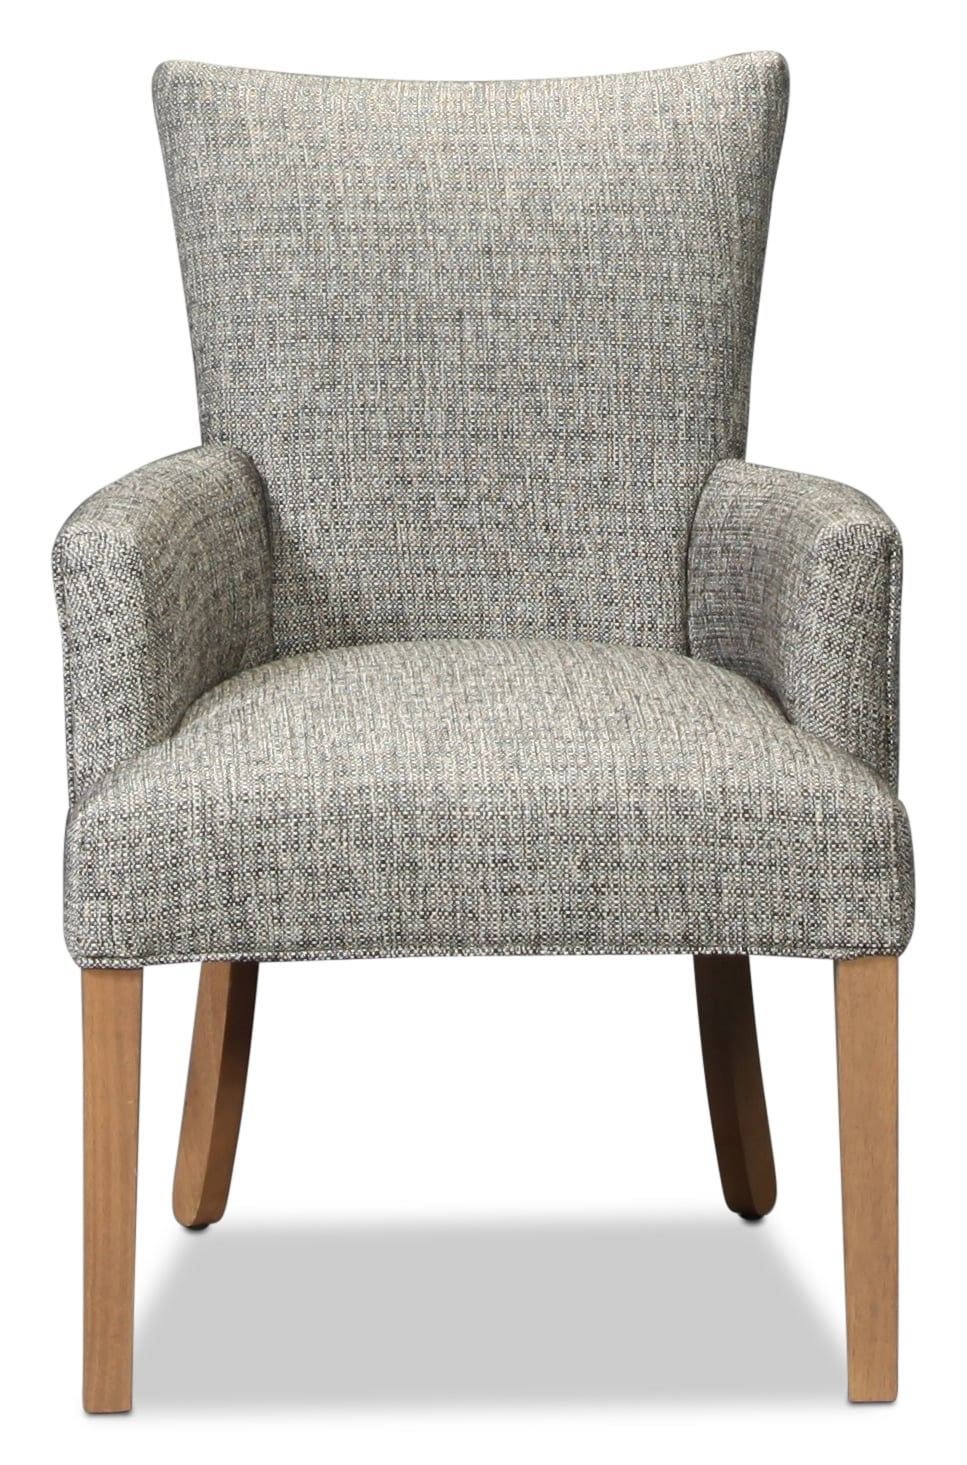 Colim Parson Arm Chair - Ash Gray